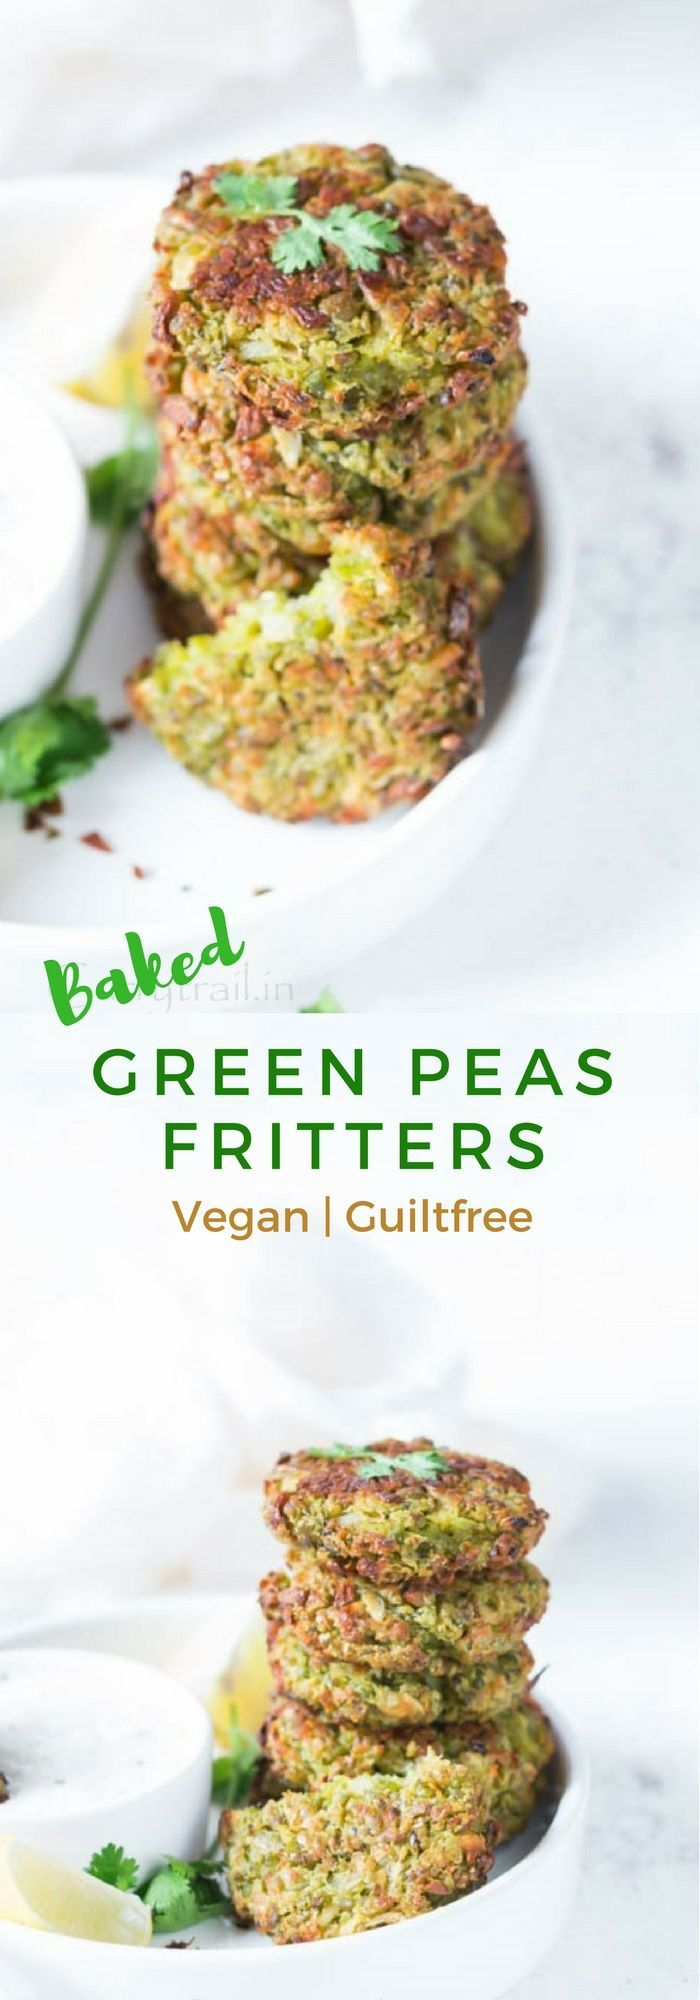 Baked Green Peas Fritters BAKED GREEN PEAS FRITTERS ARE GREEN GOODNESS PACKED WITH FLAVORSWITH A PERFECT CRUNCH ELEMENT OUTSIDE, AND SOFT SLIGHTLY CRUMBLY TEXTURE. THIS MUNCH-ON-ANY-TIME-OF-THE-DAY SNACK TICKS ALL THE RIGHT BOXES ON YOUR HEALTH CHART. IT'S SO GOOD FOR YOU THAT YOU CAN LITERALLY HAVE MORE THAN A FEW AND SATISFY YOUR CRAVINGS.